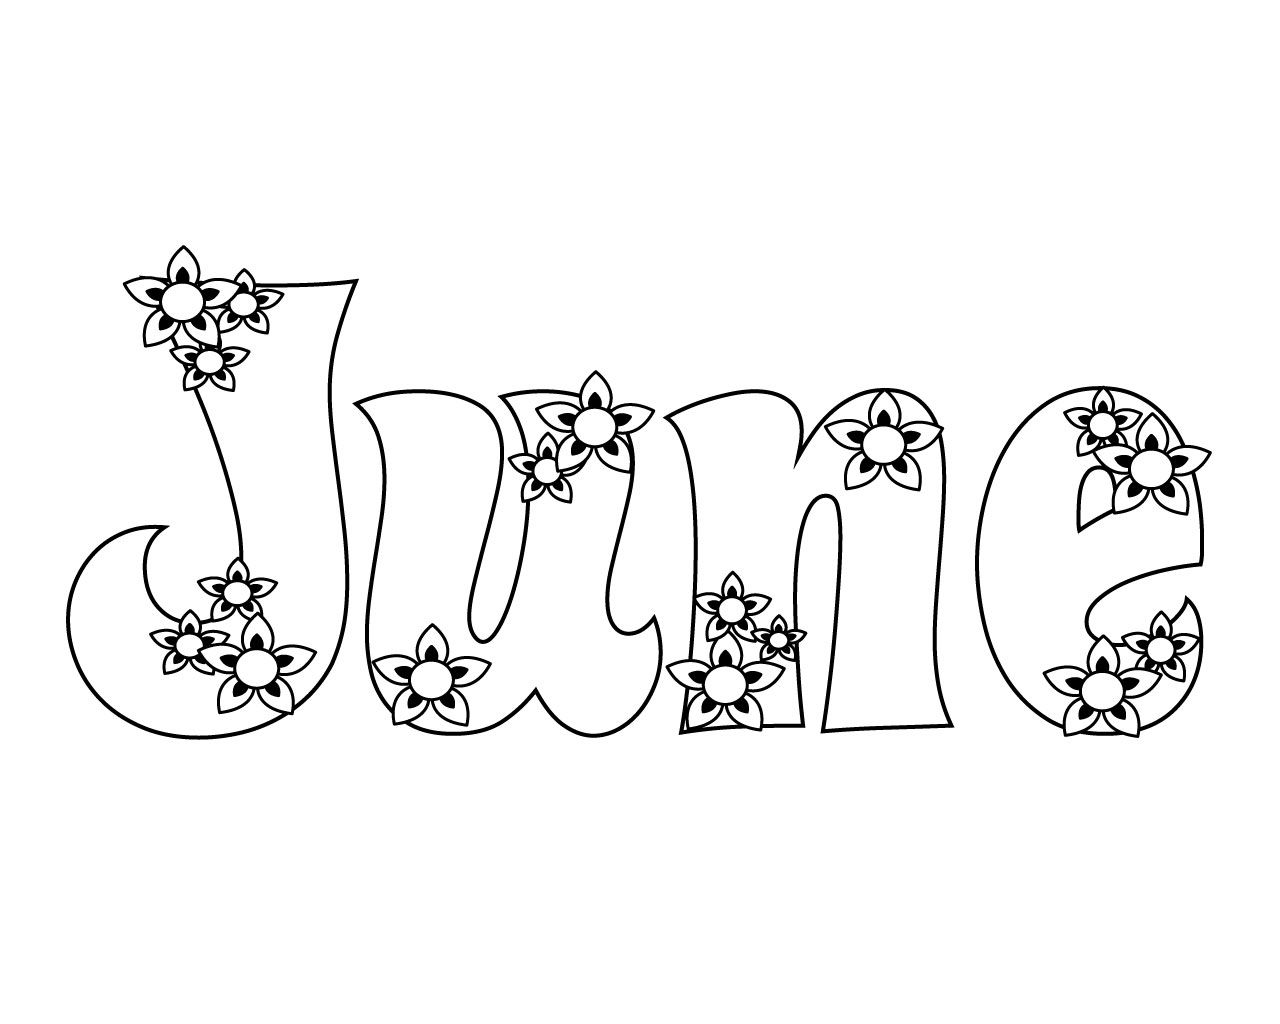 June Coloring Pages Free To Download All People Who Loves To Color Coloring Pages Also Get Here Som In 2020 Coloring Pages Flower Coloring Pages Summer Coloring Pages